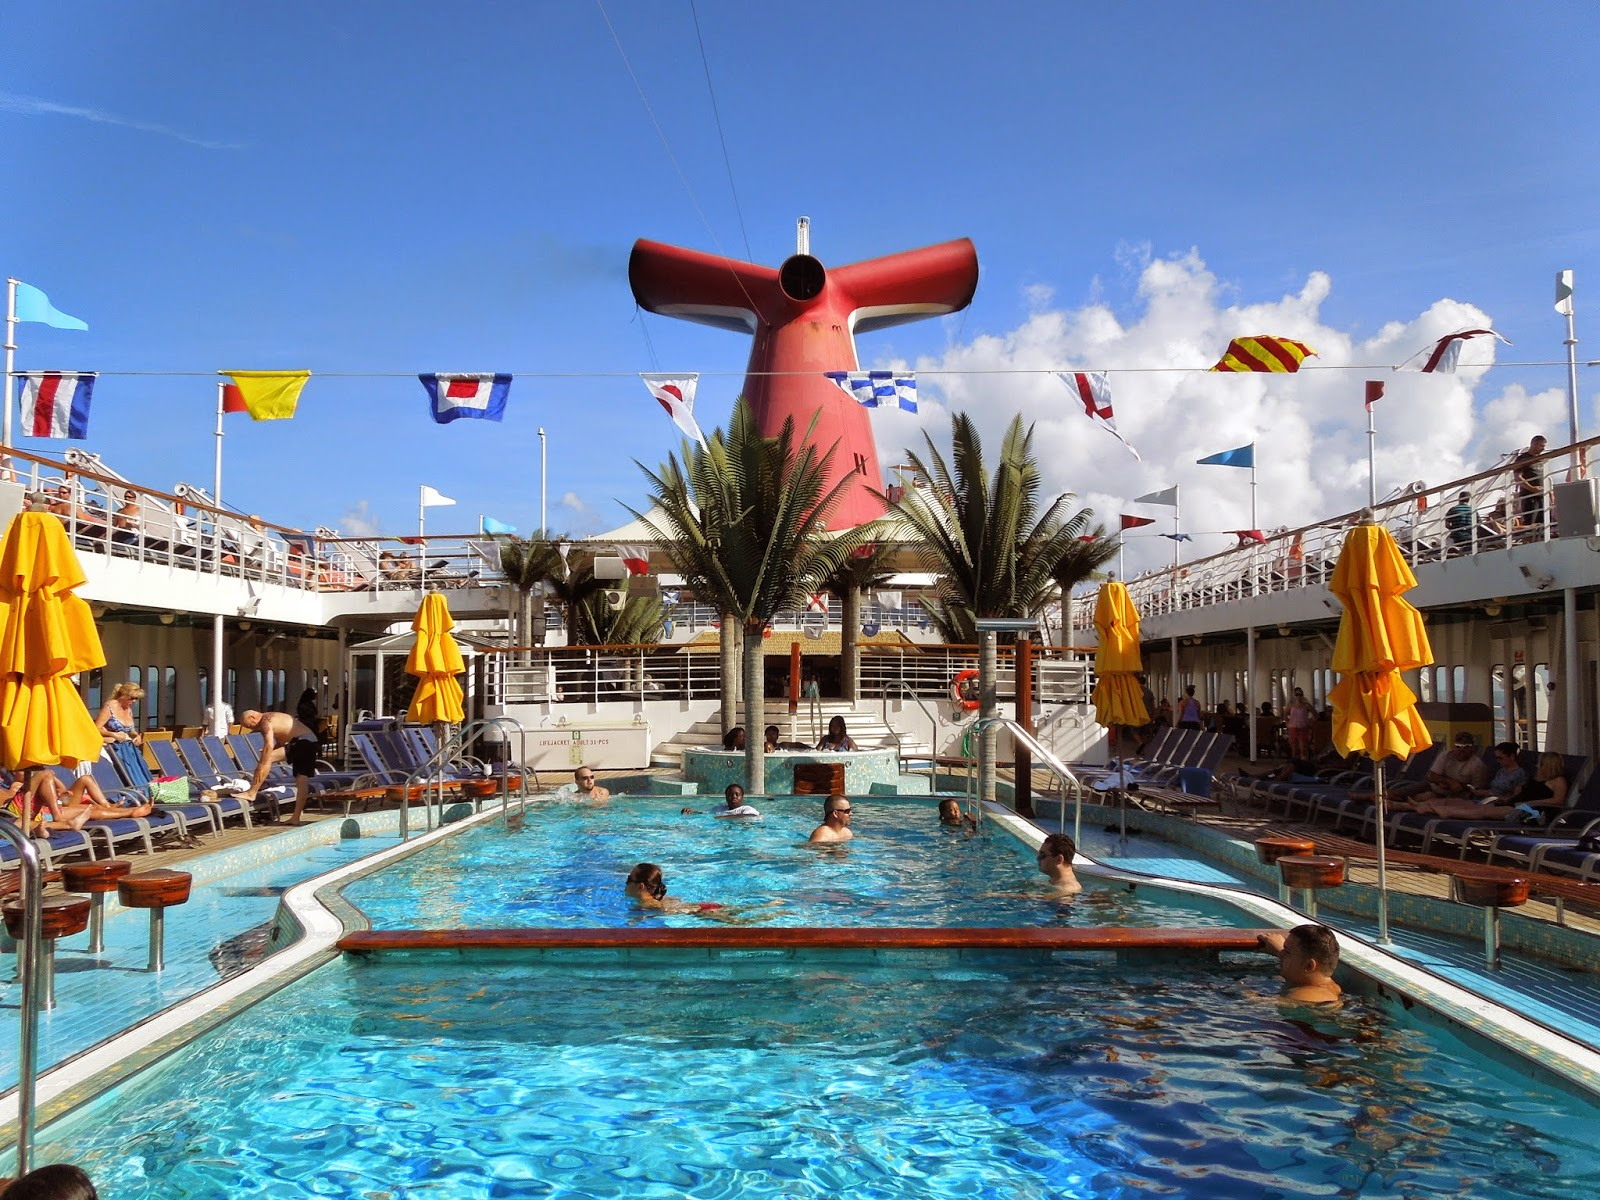 Carnival Sensation main pool